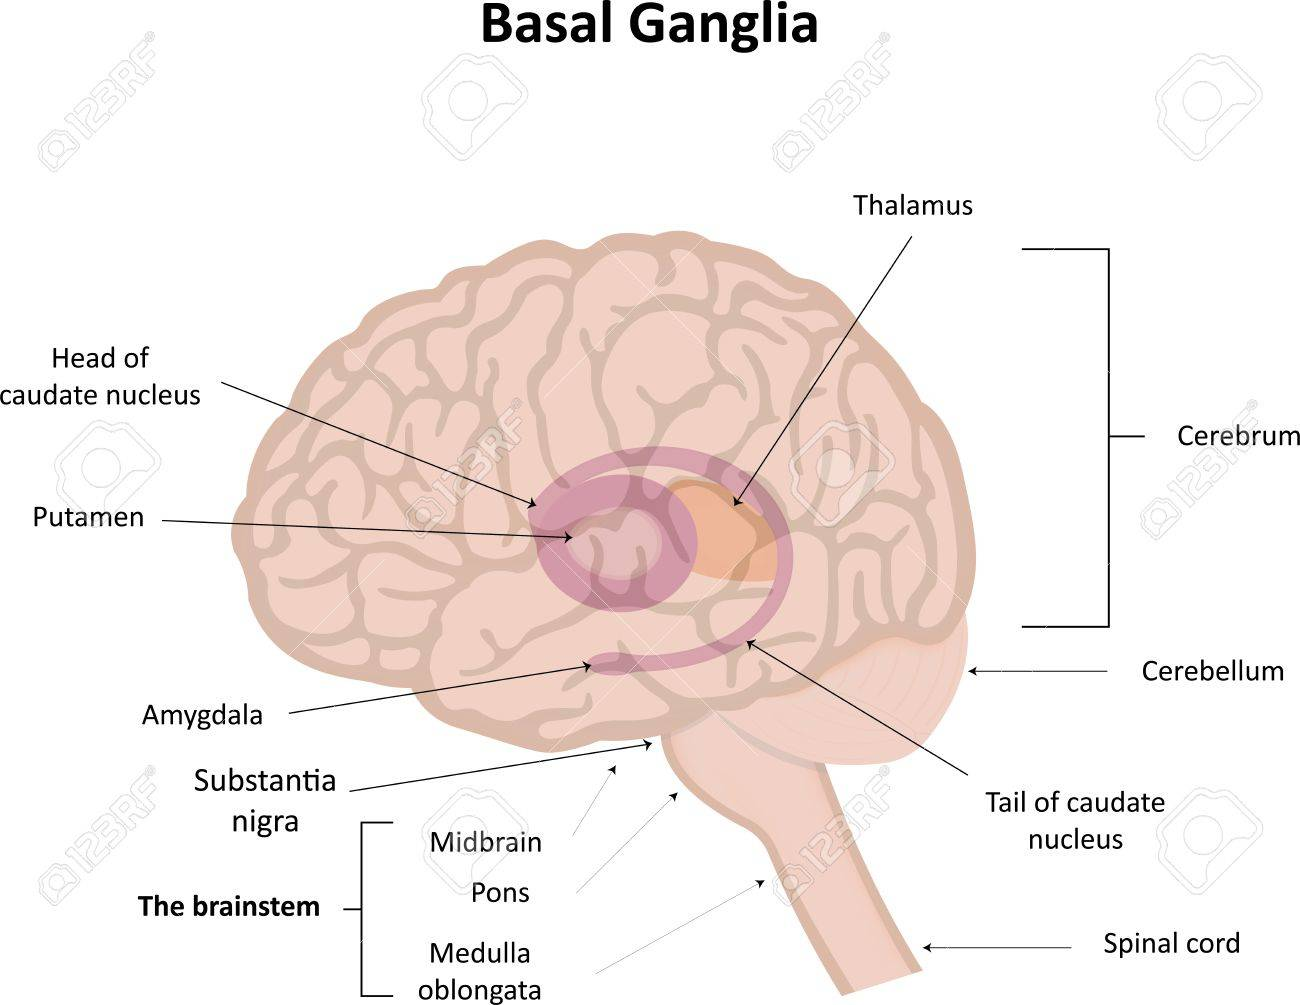 Basal Ganglia In Brain Royalty Free Cliparts, Vectors, And Stock ...